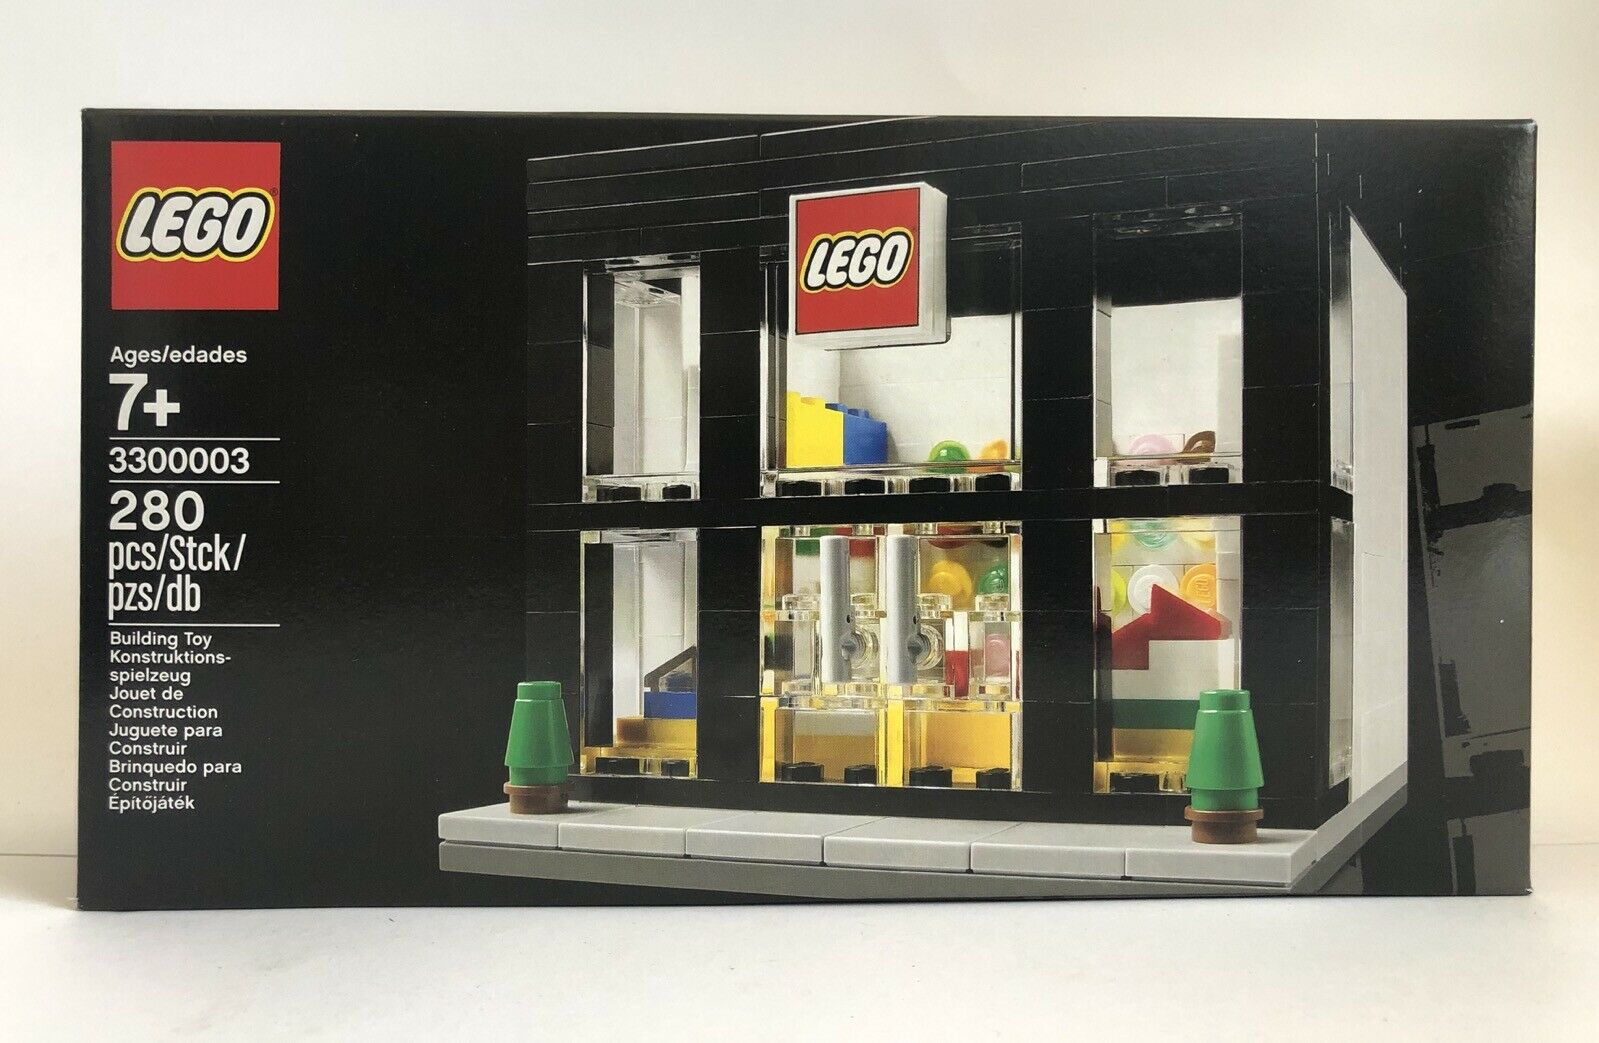 Lego 3300003 Exclusive Brand Retail Store Grand Opening Limited Promo Set